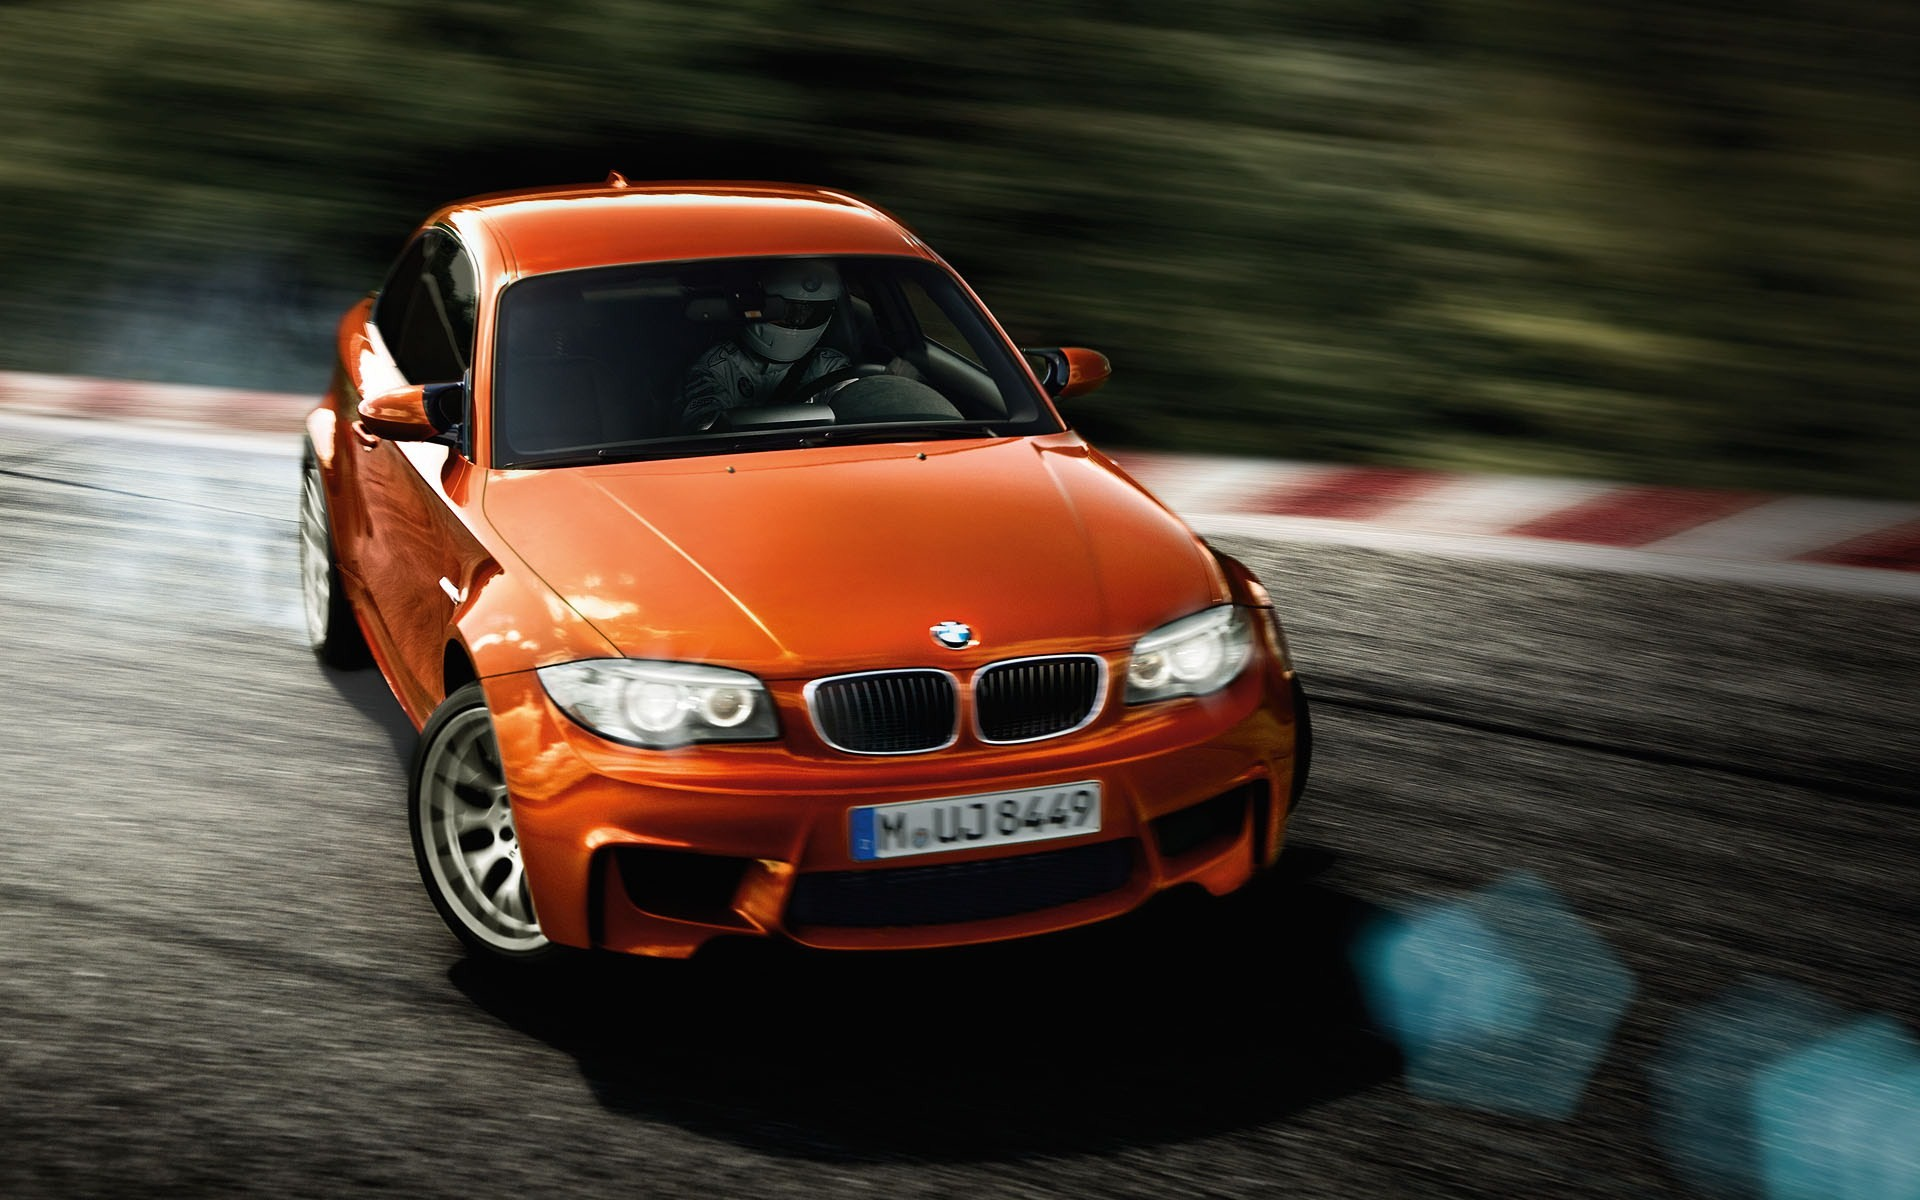 Res: 1920x1200, BMW 1 Series M Coupe Wallpapers